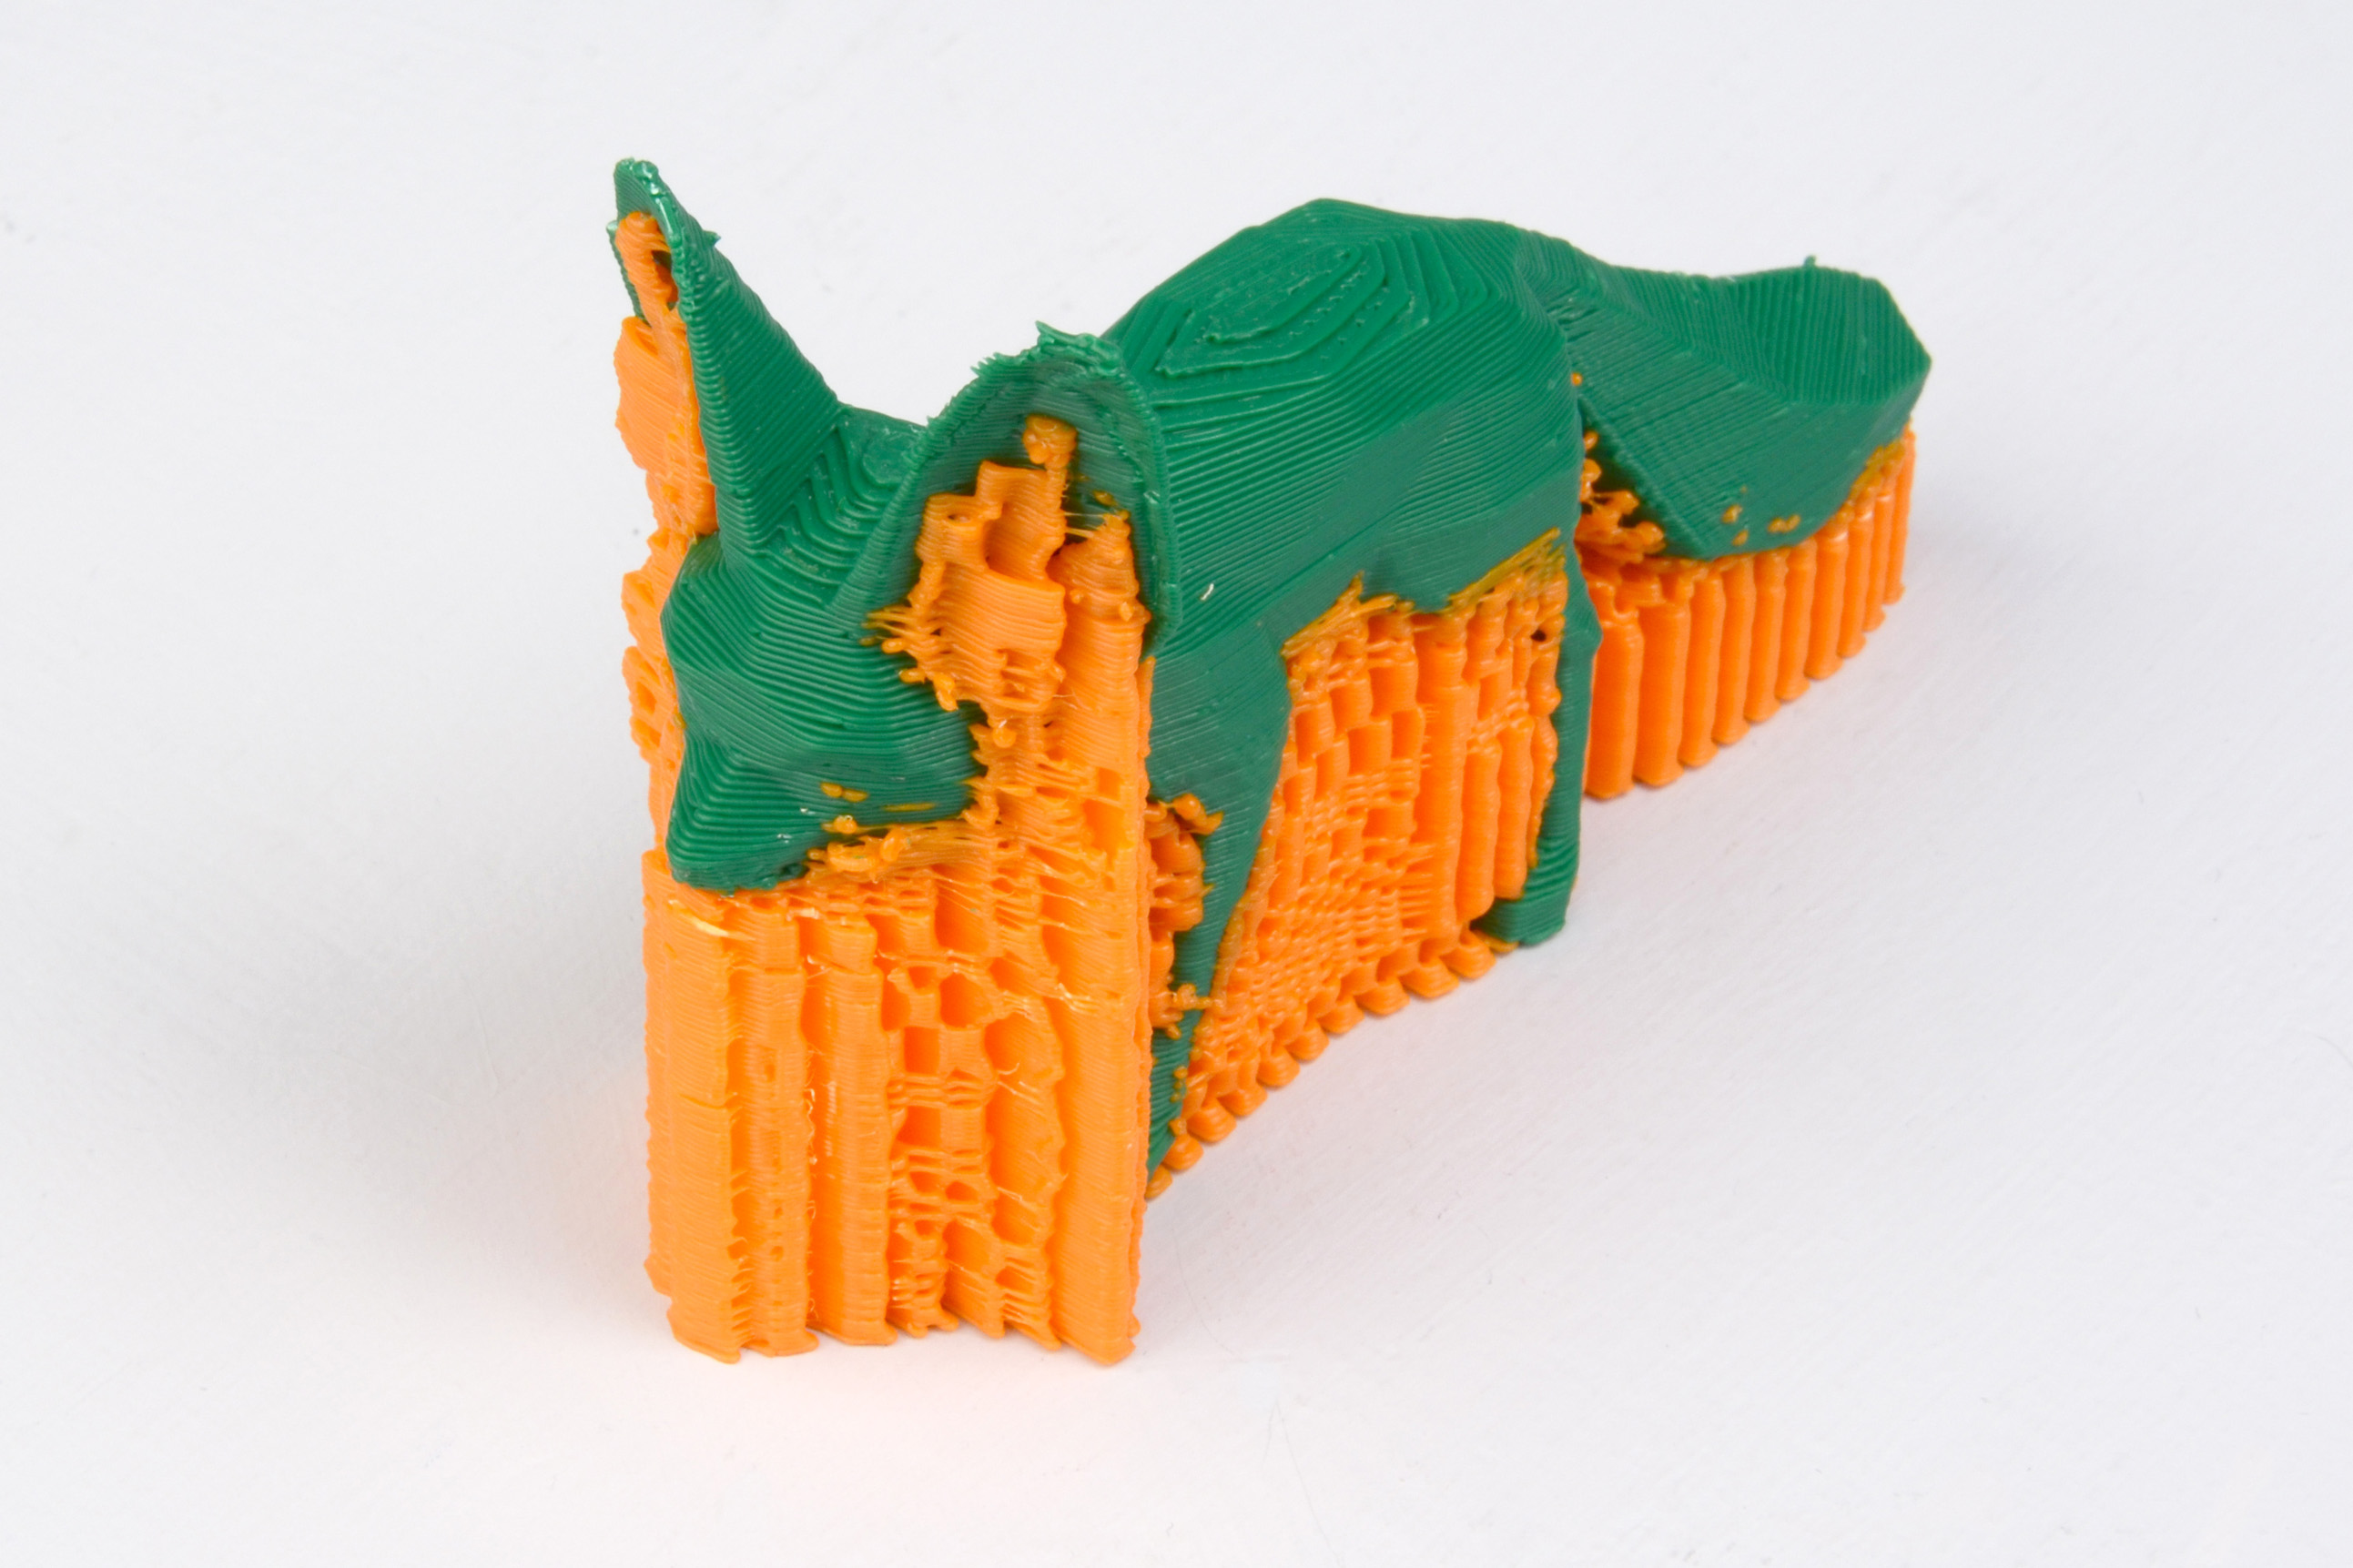 An example of an object printed with support material.